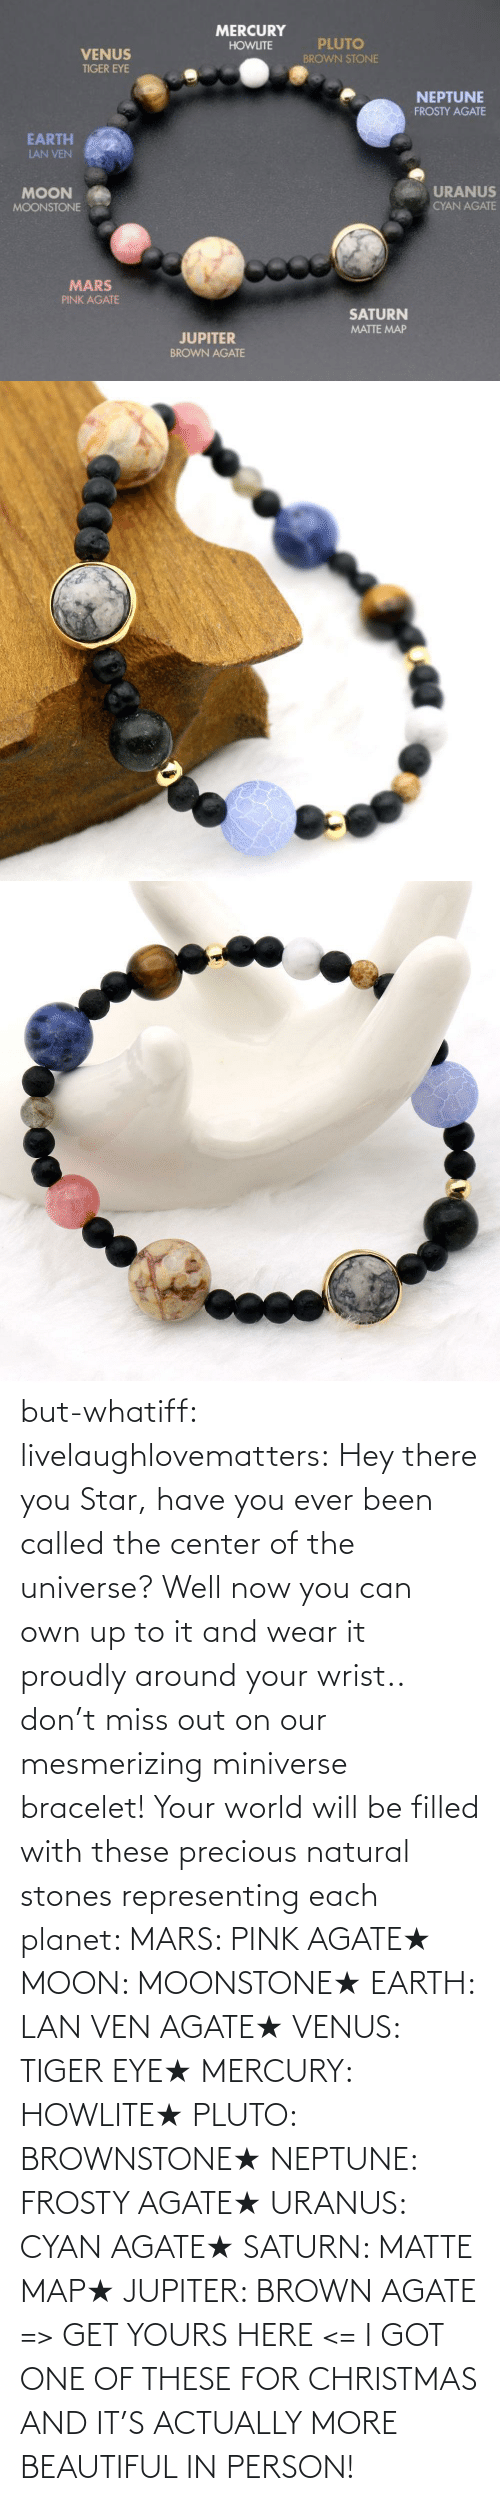 universe: but-whatiff:  livelaughlovematters:  Hey there you Star, have you ever been called the center of the universe? Well now you can own up to it and wear it proudly around your wrist.. don't miss out on our mesmerizing miniverse bracelet! Your world will be filled with these precious natural stones representing each planet:  MARS: PINK AGATE★ MOON: MOONSTONE★ EARTH: LAN VEN AGATE★ VENUS: TIGER EYE★ MERCURY: HOWLITE★ PLUTO: BROWNSTONE★ NEPTUNE: FROSTY AGATE★ URANUS: CYAN AGATE★ SATURN: MATTE MAP★ JUPITER: BROWN AGATE => GET YOURS HERE <=  I GOT ONE OF THESE FOR CHRISTMAS AND IT'S ACTUALLY MORE BEAUTIFUL IN PERSON!